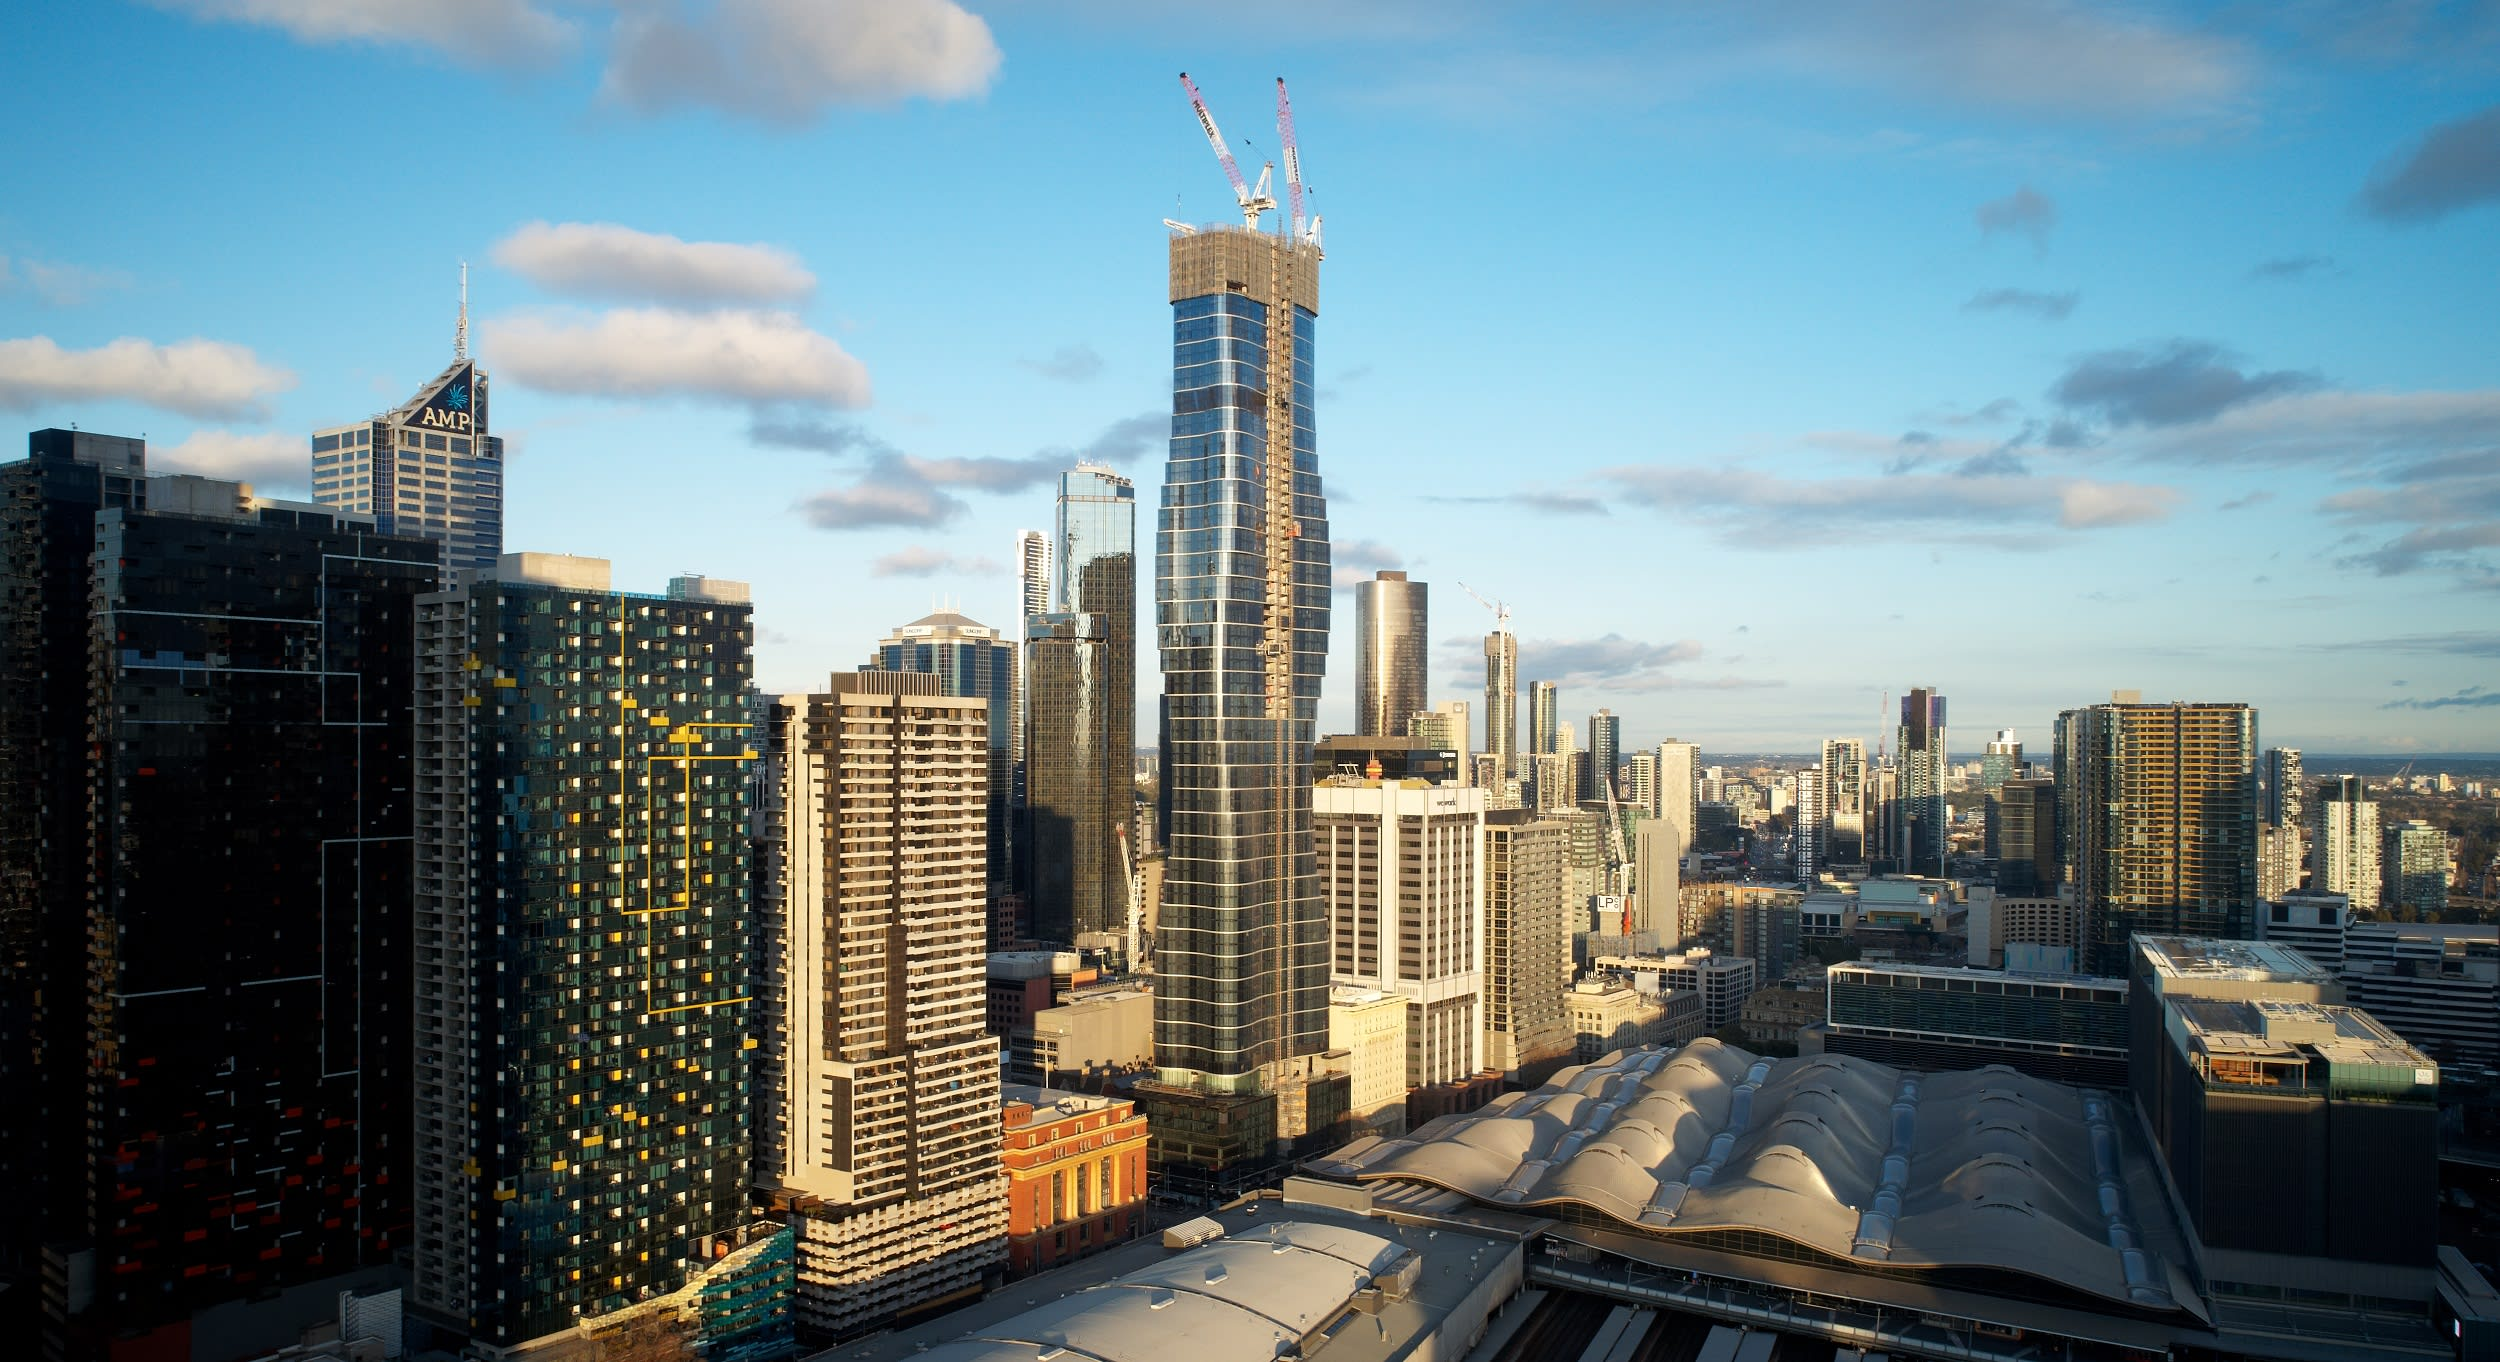 Melbourne skyscraper inspired by a Beyoncé music video tops out at 246 metres